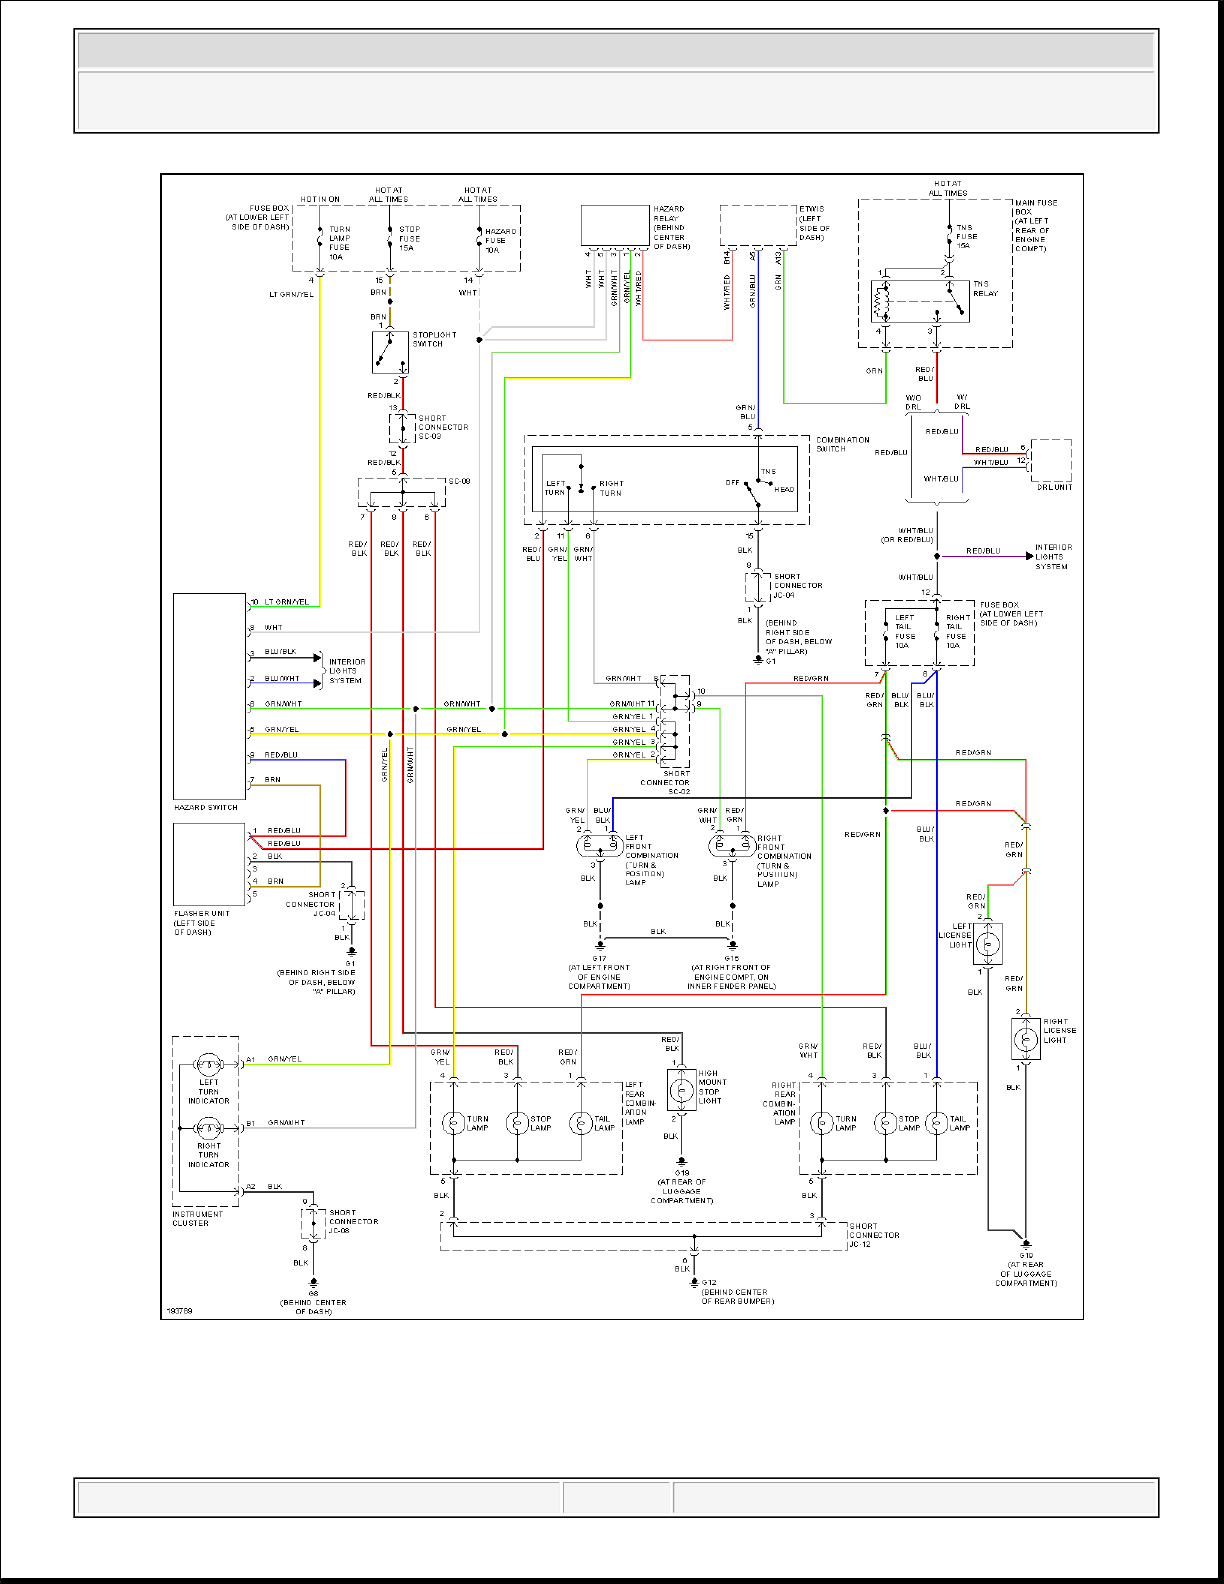 2005 Kia Rio Electrical Wiring Schematic | Wiring Schematic ... Kia Rio Electrical Wiring Diagram on kia rio exhaust system diagram, kia rio air conditioning, kia rio grille assembly, kia rio fuel filter replacement, 2008 nissan pathfinder wiring diagram, kia sorento wiring diagram, kib monitor panel wiring diagram, 2005 kia rio belt diagram, kia rio alternator diagram, 2008 jeep wrangler wiring diagram, kia sedona wiring-diagram, kia rio engine, kia rio service manual, kia rio fuse diagram, kia rio schematic, electric motor wiring diagram, kia rio brake, kia rio transmission, radio wiring diagram, kia rio miles per gallon,